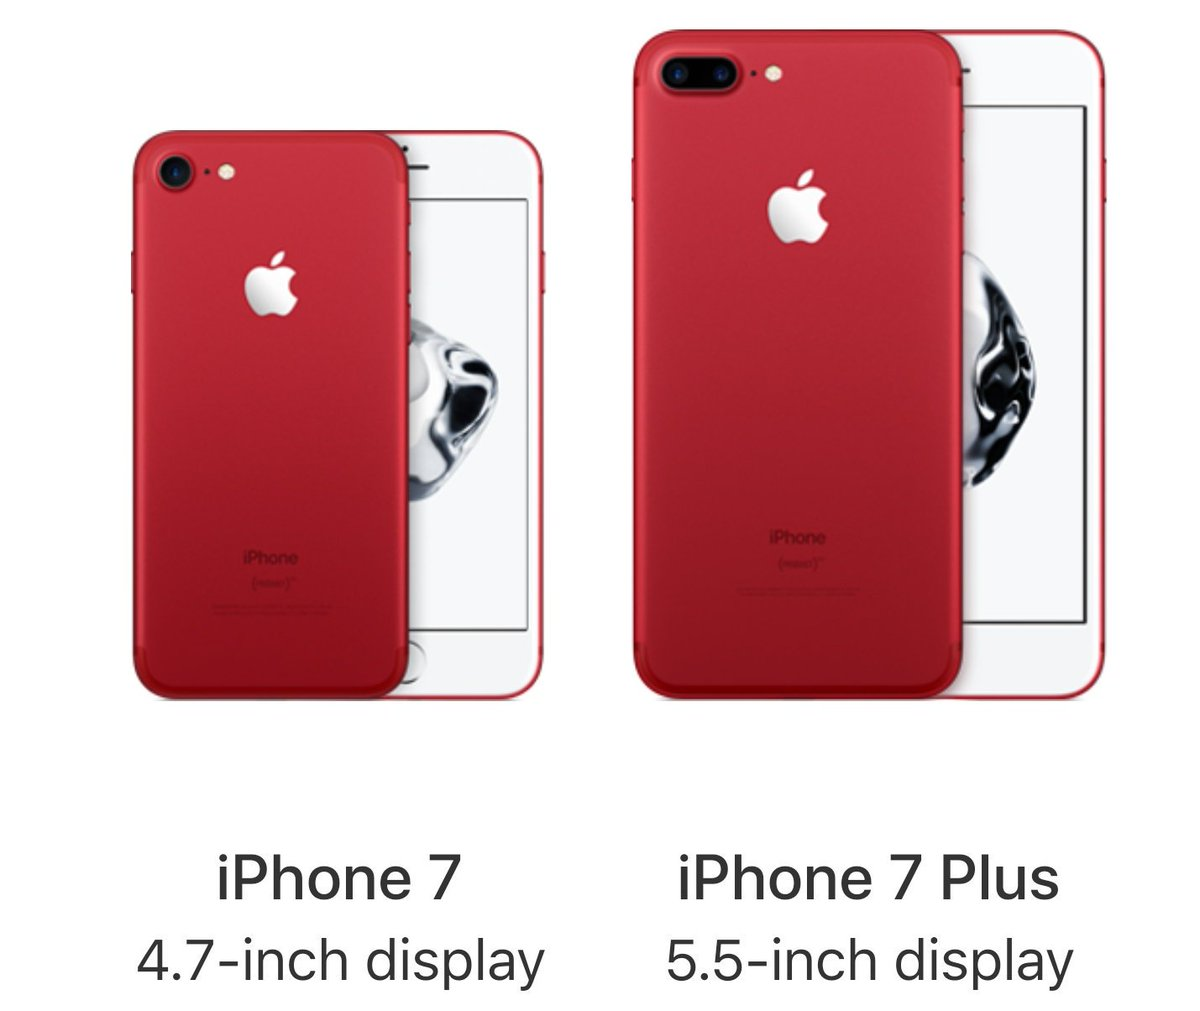 Nuovo iPhone 7 e iPhone 7 Plus: Rossa sorpresa di Apple